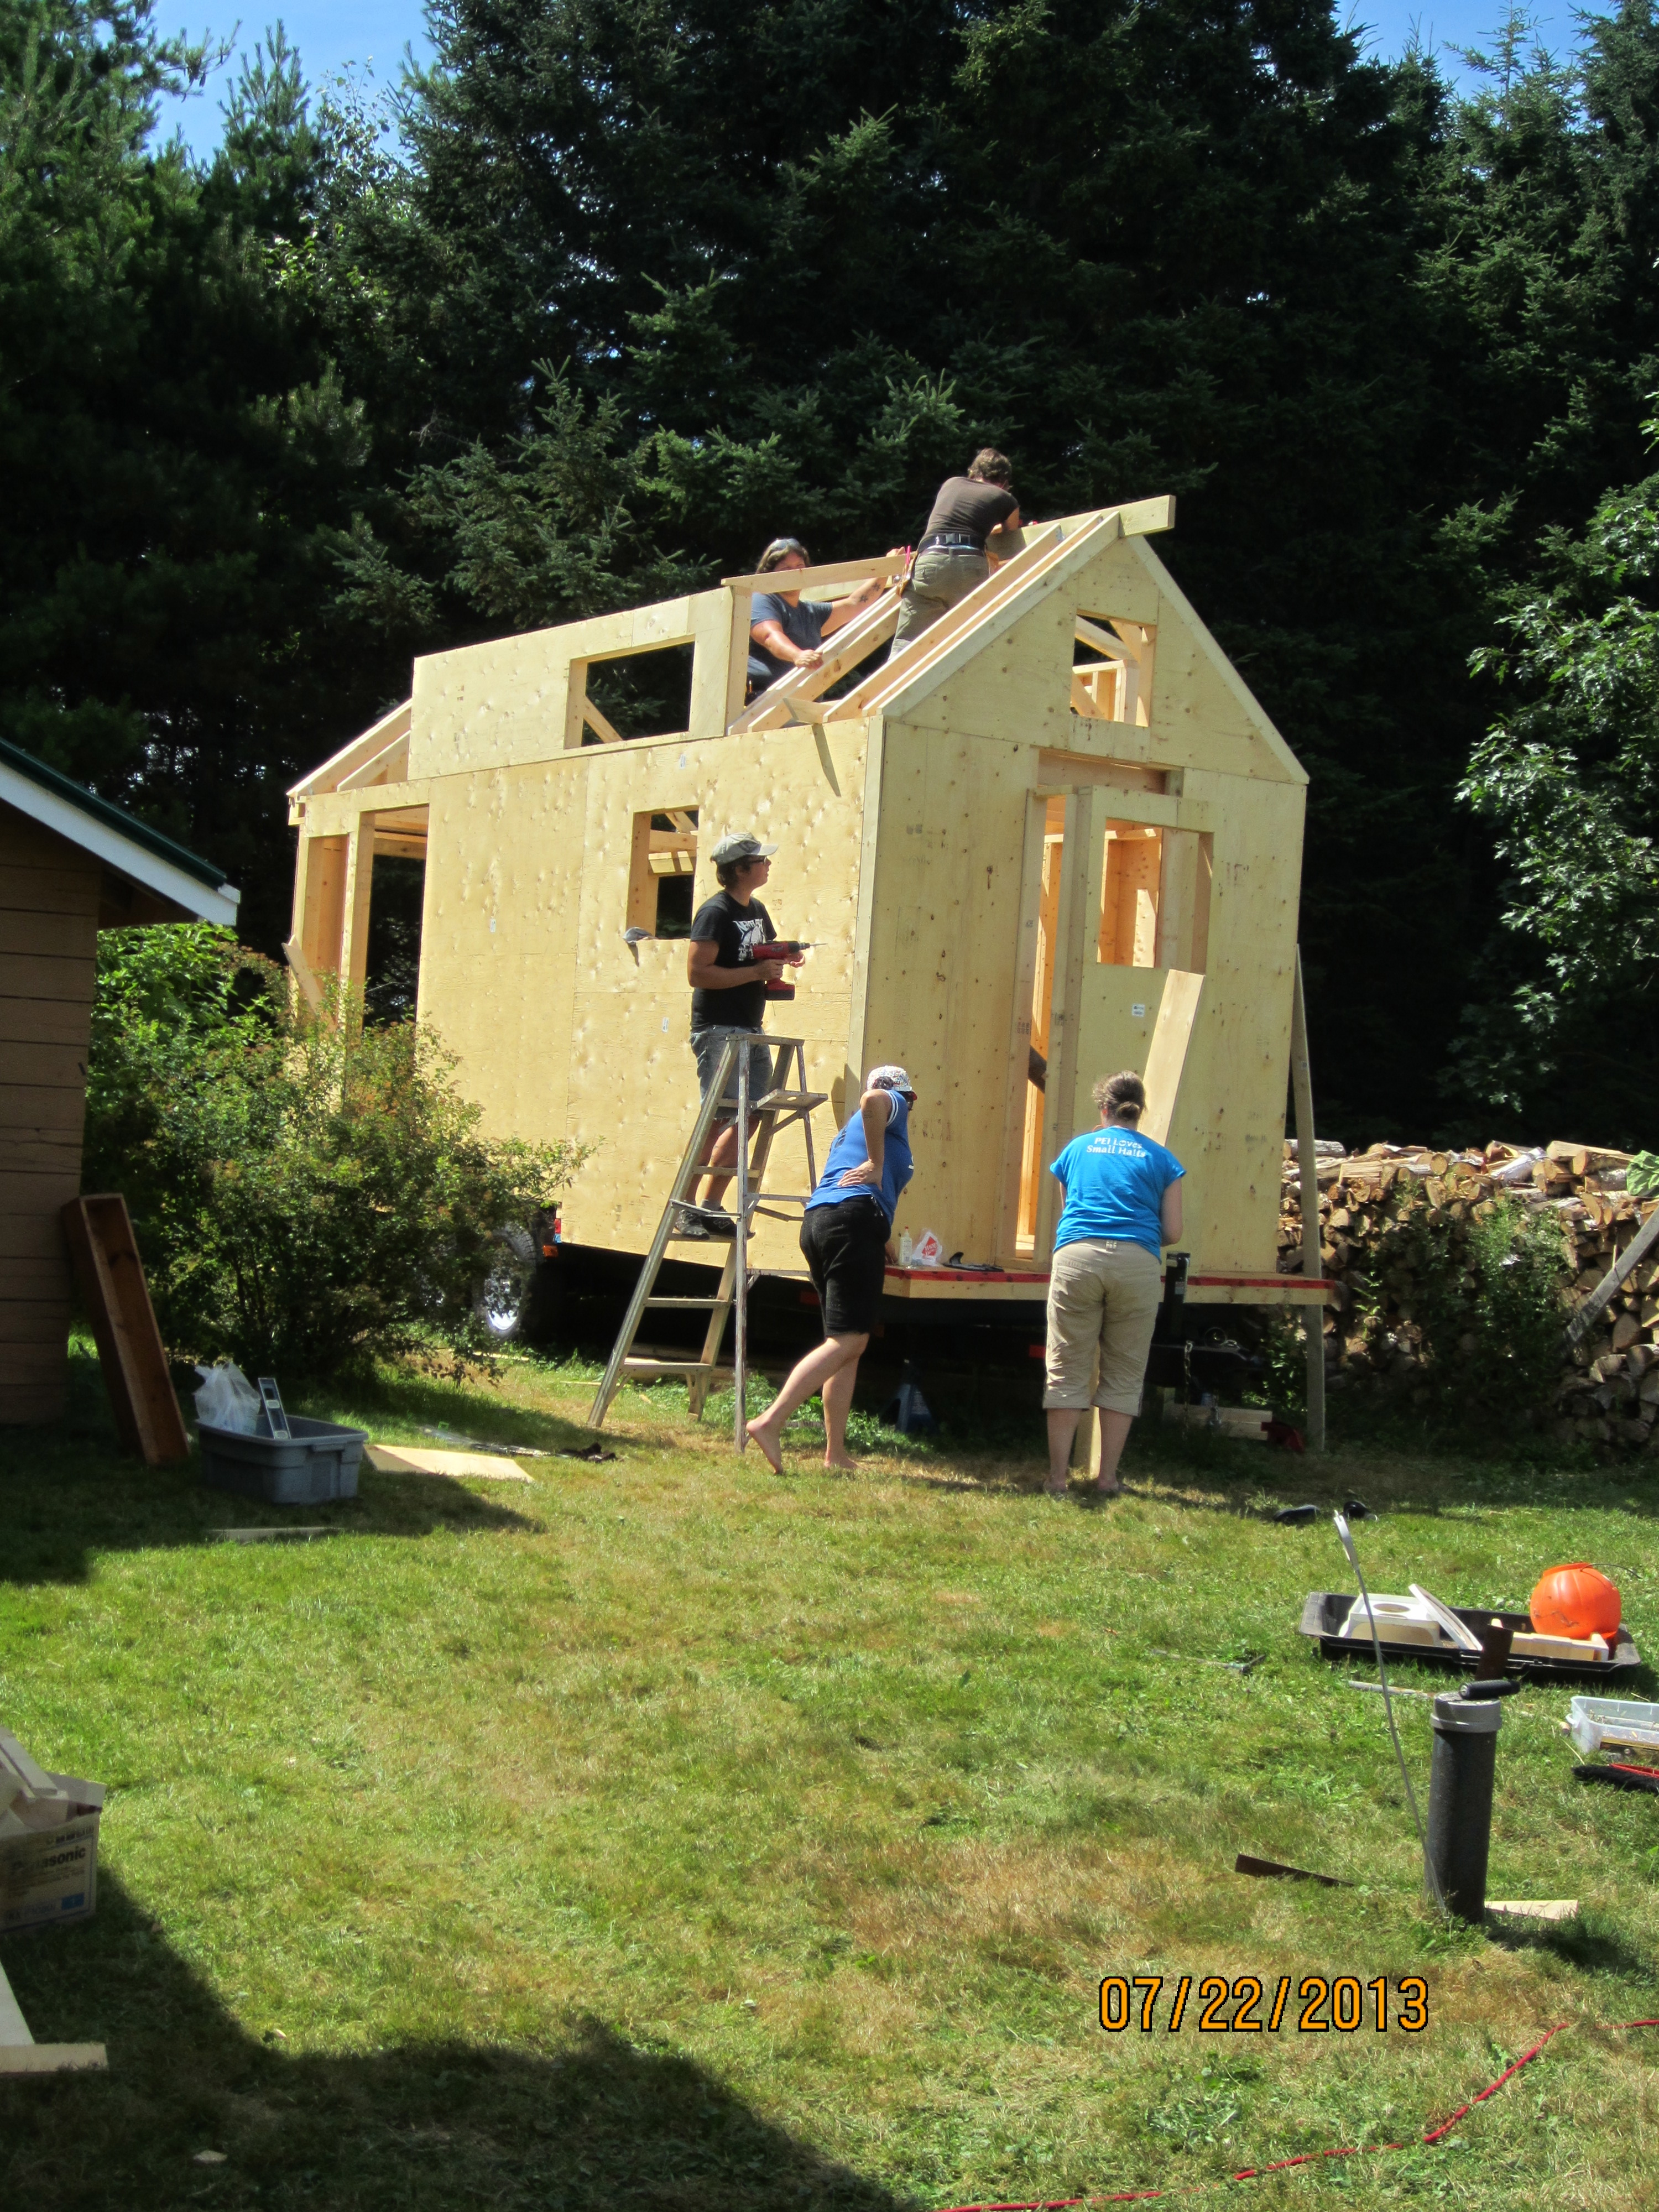 Prime Pei Tiny House My Tiny Refuge Largest Home Design Picture Inspirations Pitcheantrous